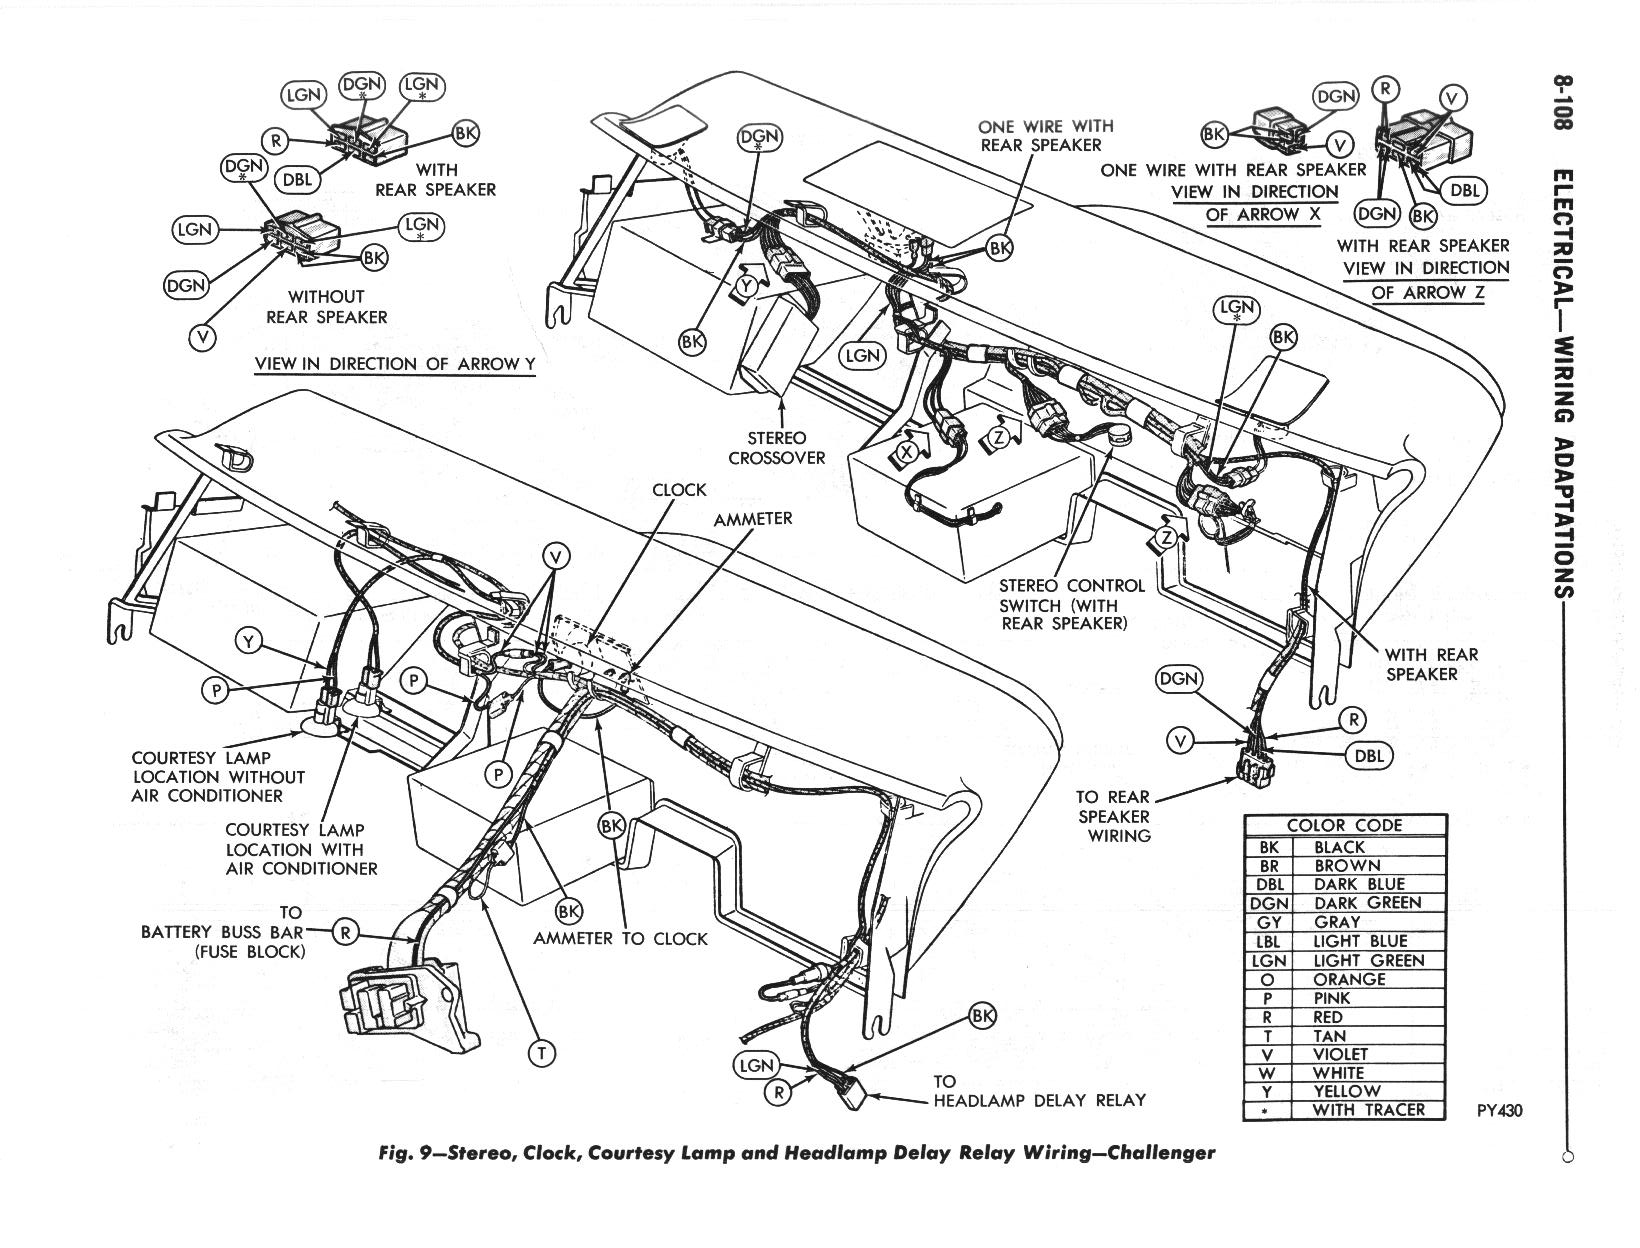 1784_0_GRP8_108 1970 challenger wiring diagrams \u2022 the dodge challenger message board 1970 dodge challenger wiring diagram at webbmarketing.co